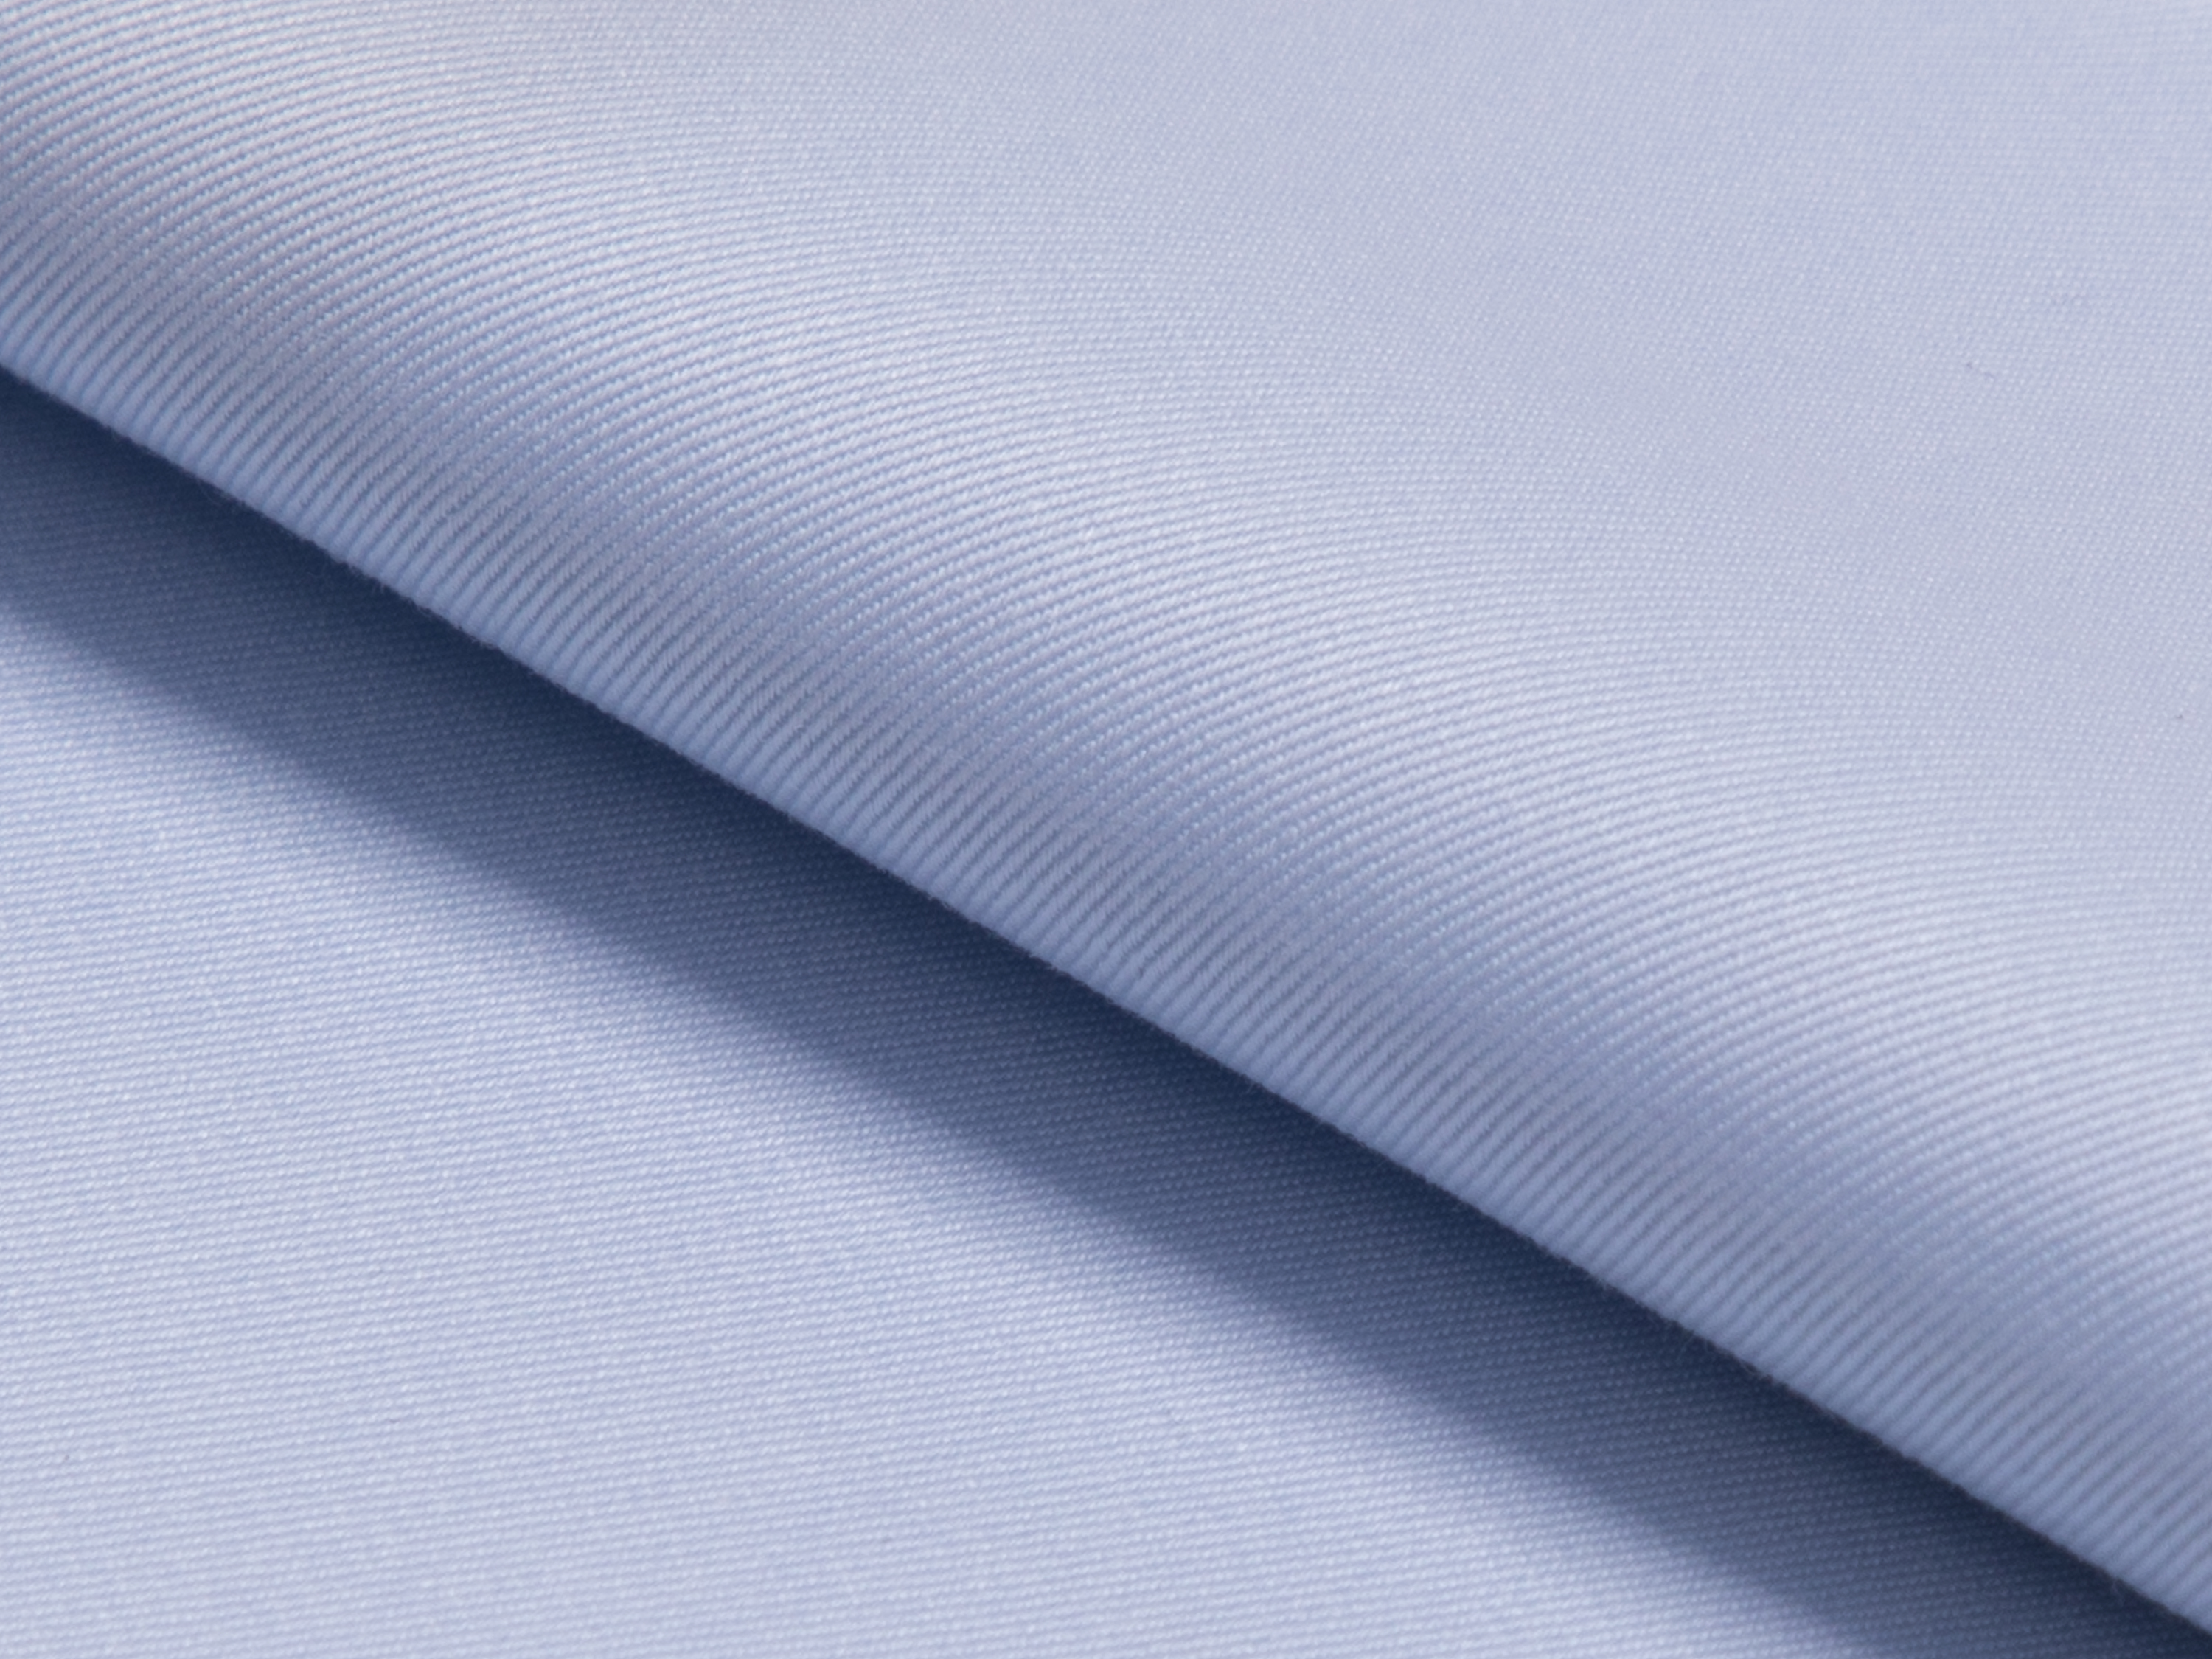 Buy tailor made shirts online - MAYFAIR - Twill Light Blue